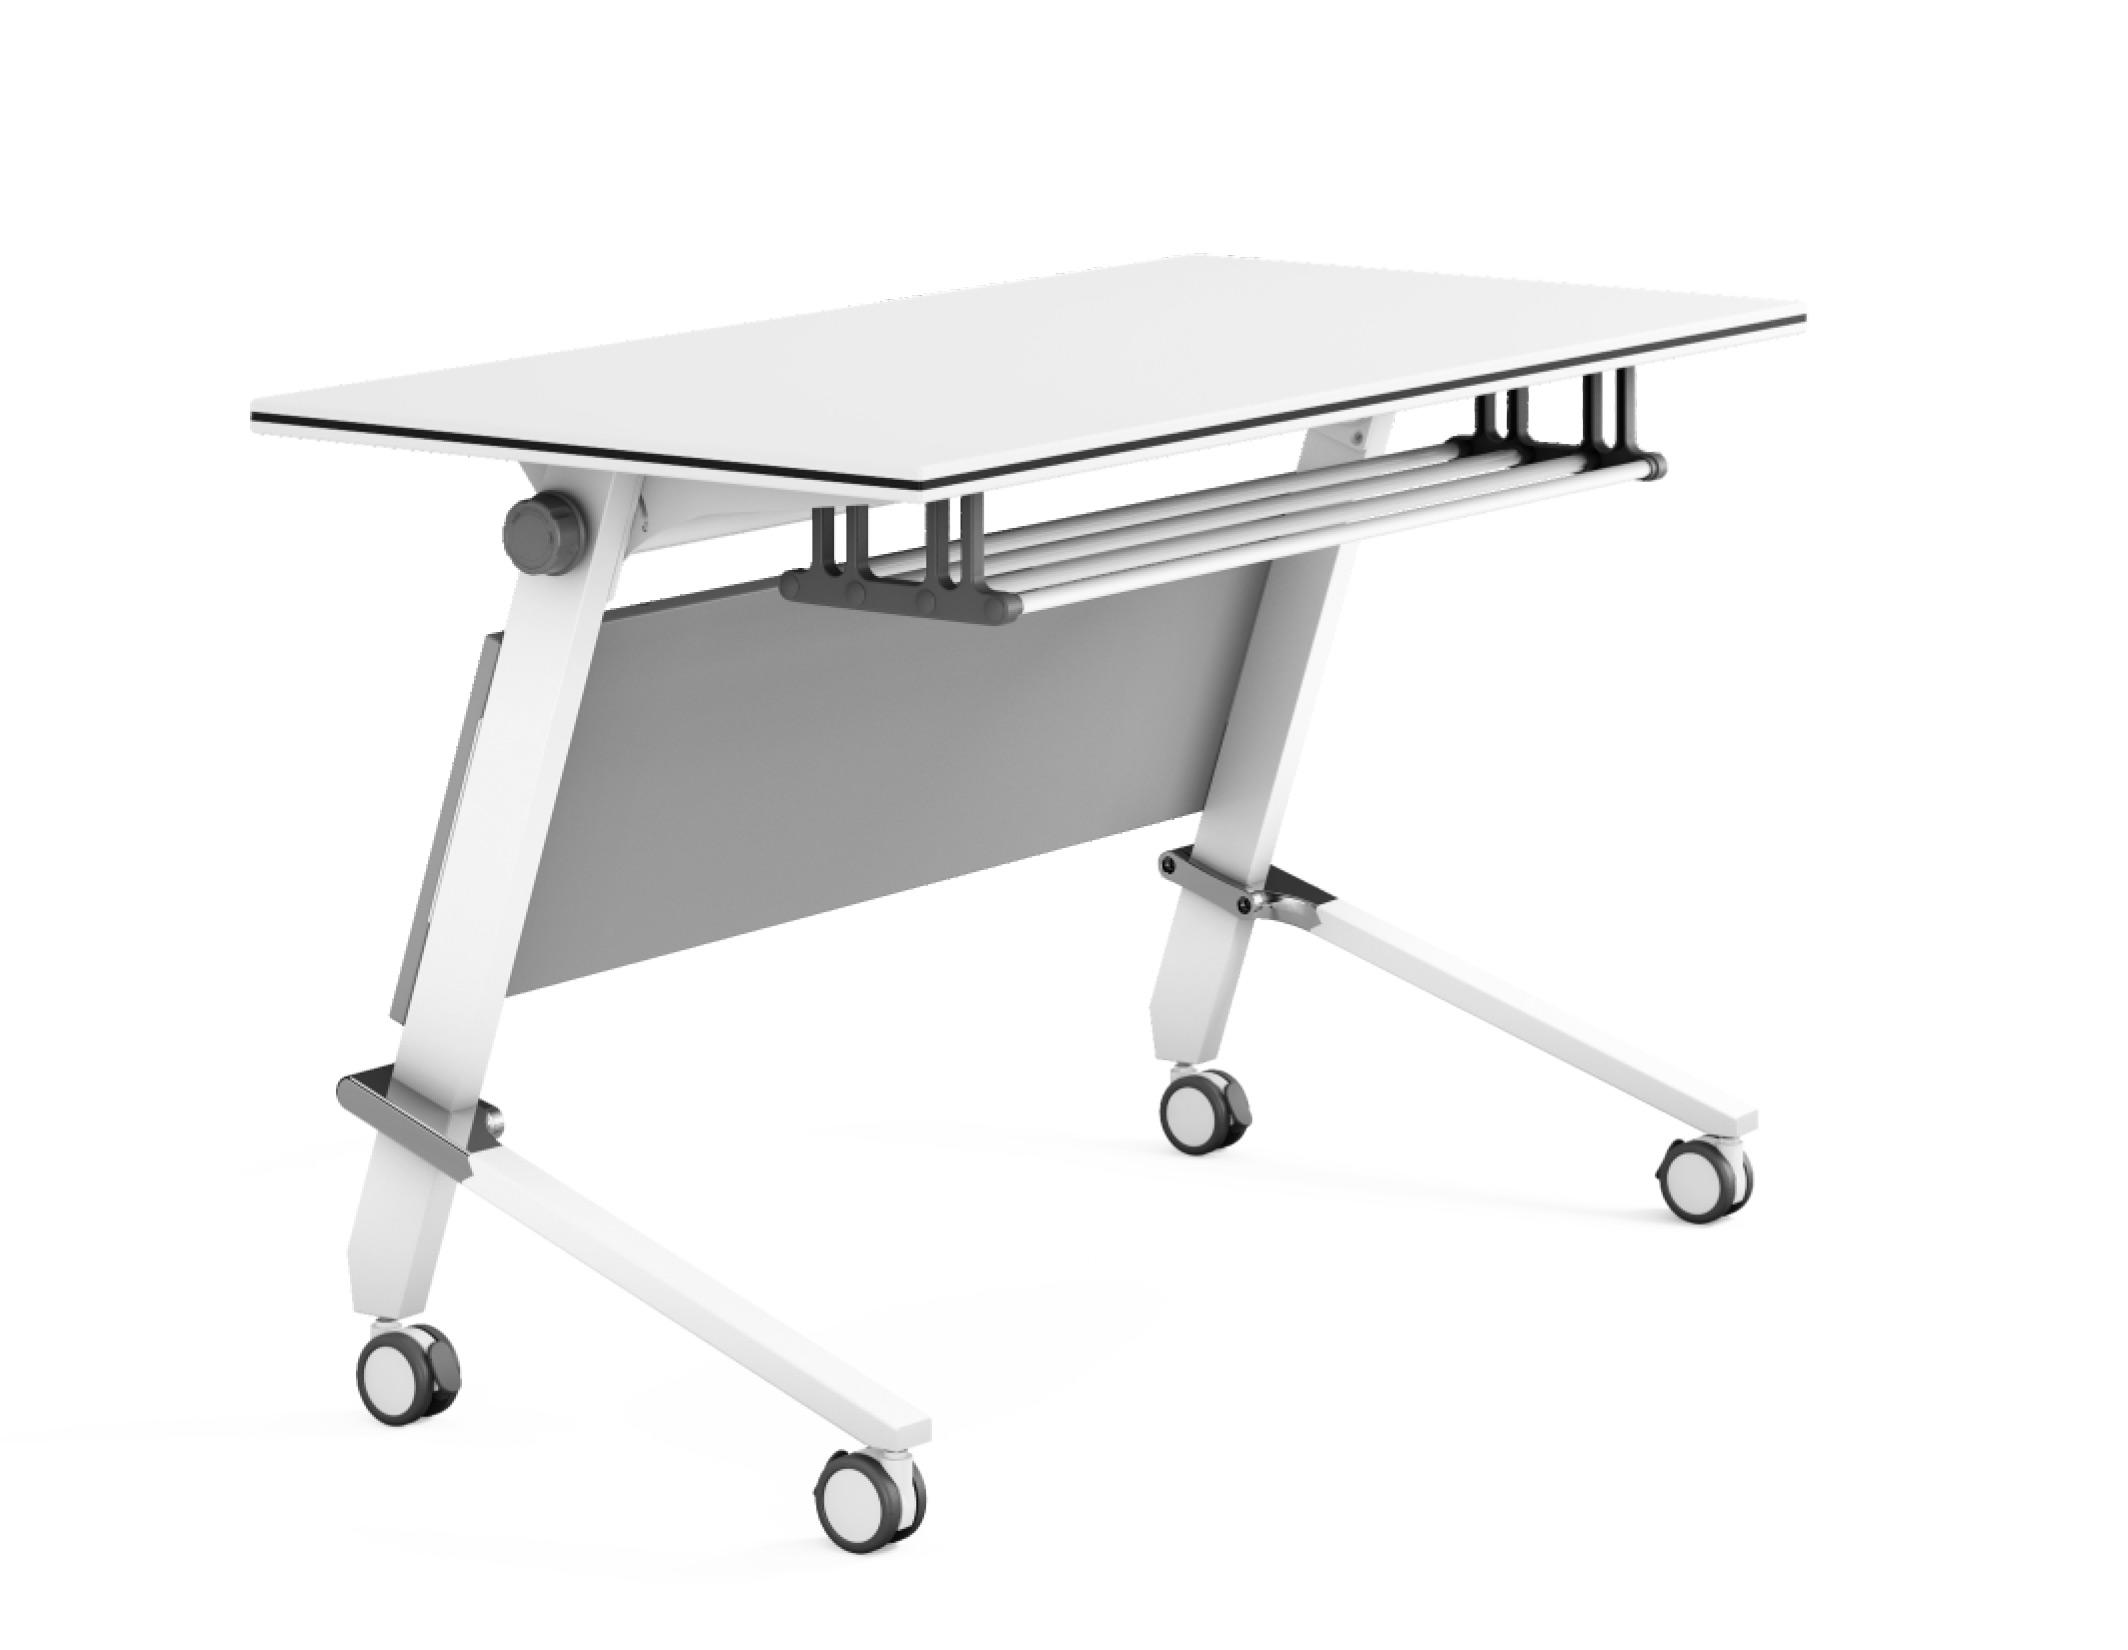 writing boardroom training table table supply-1